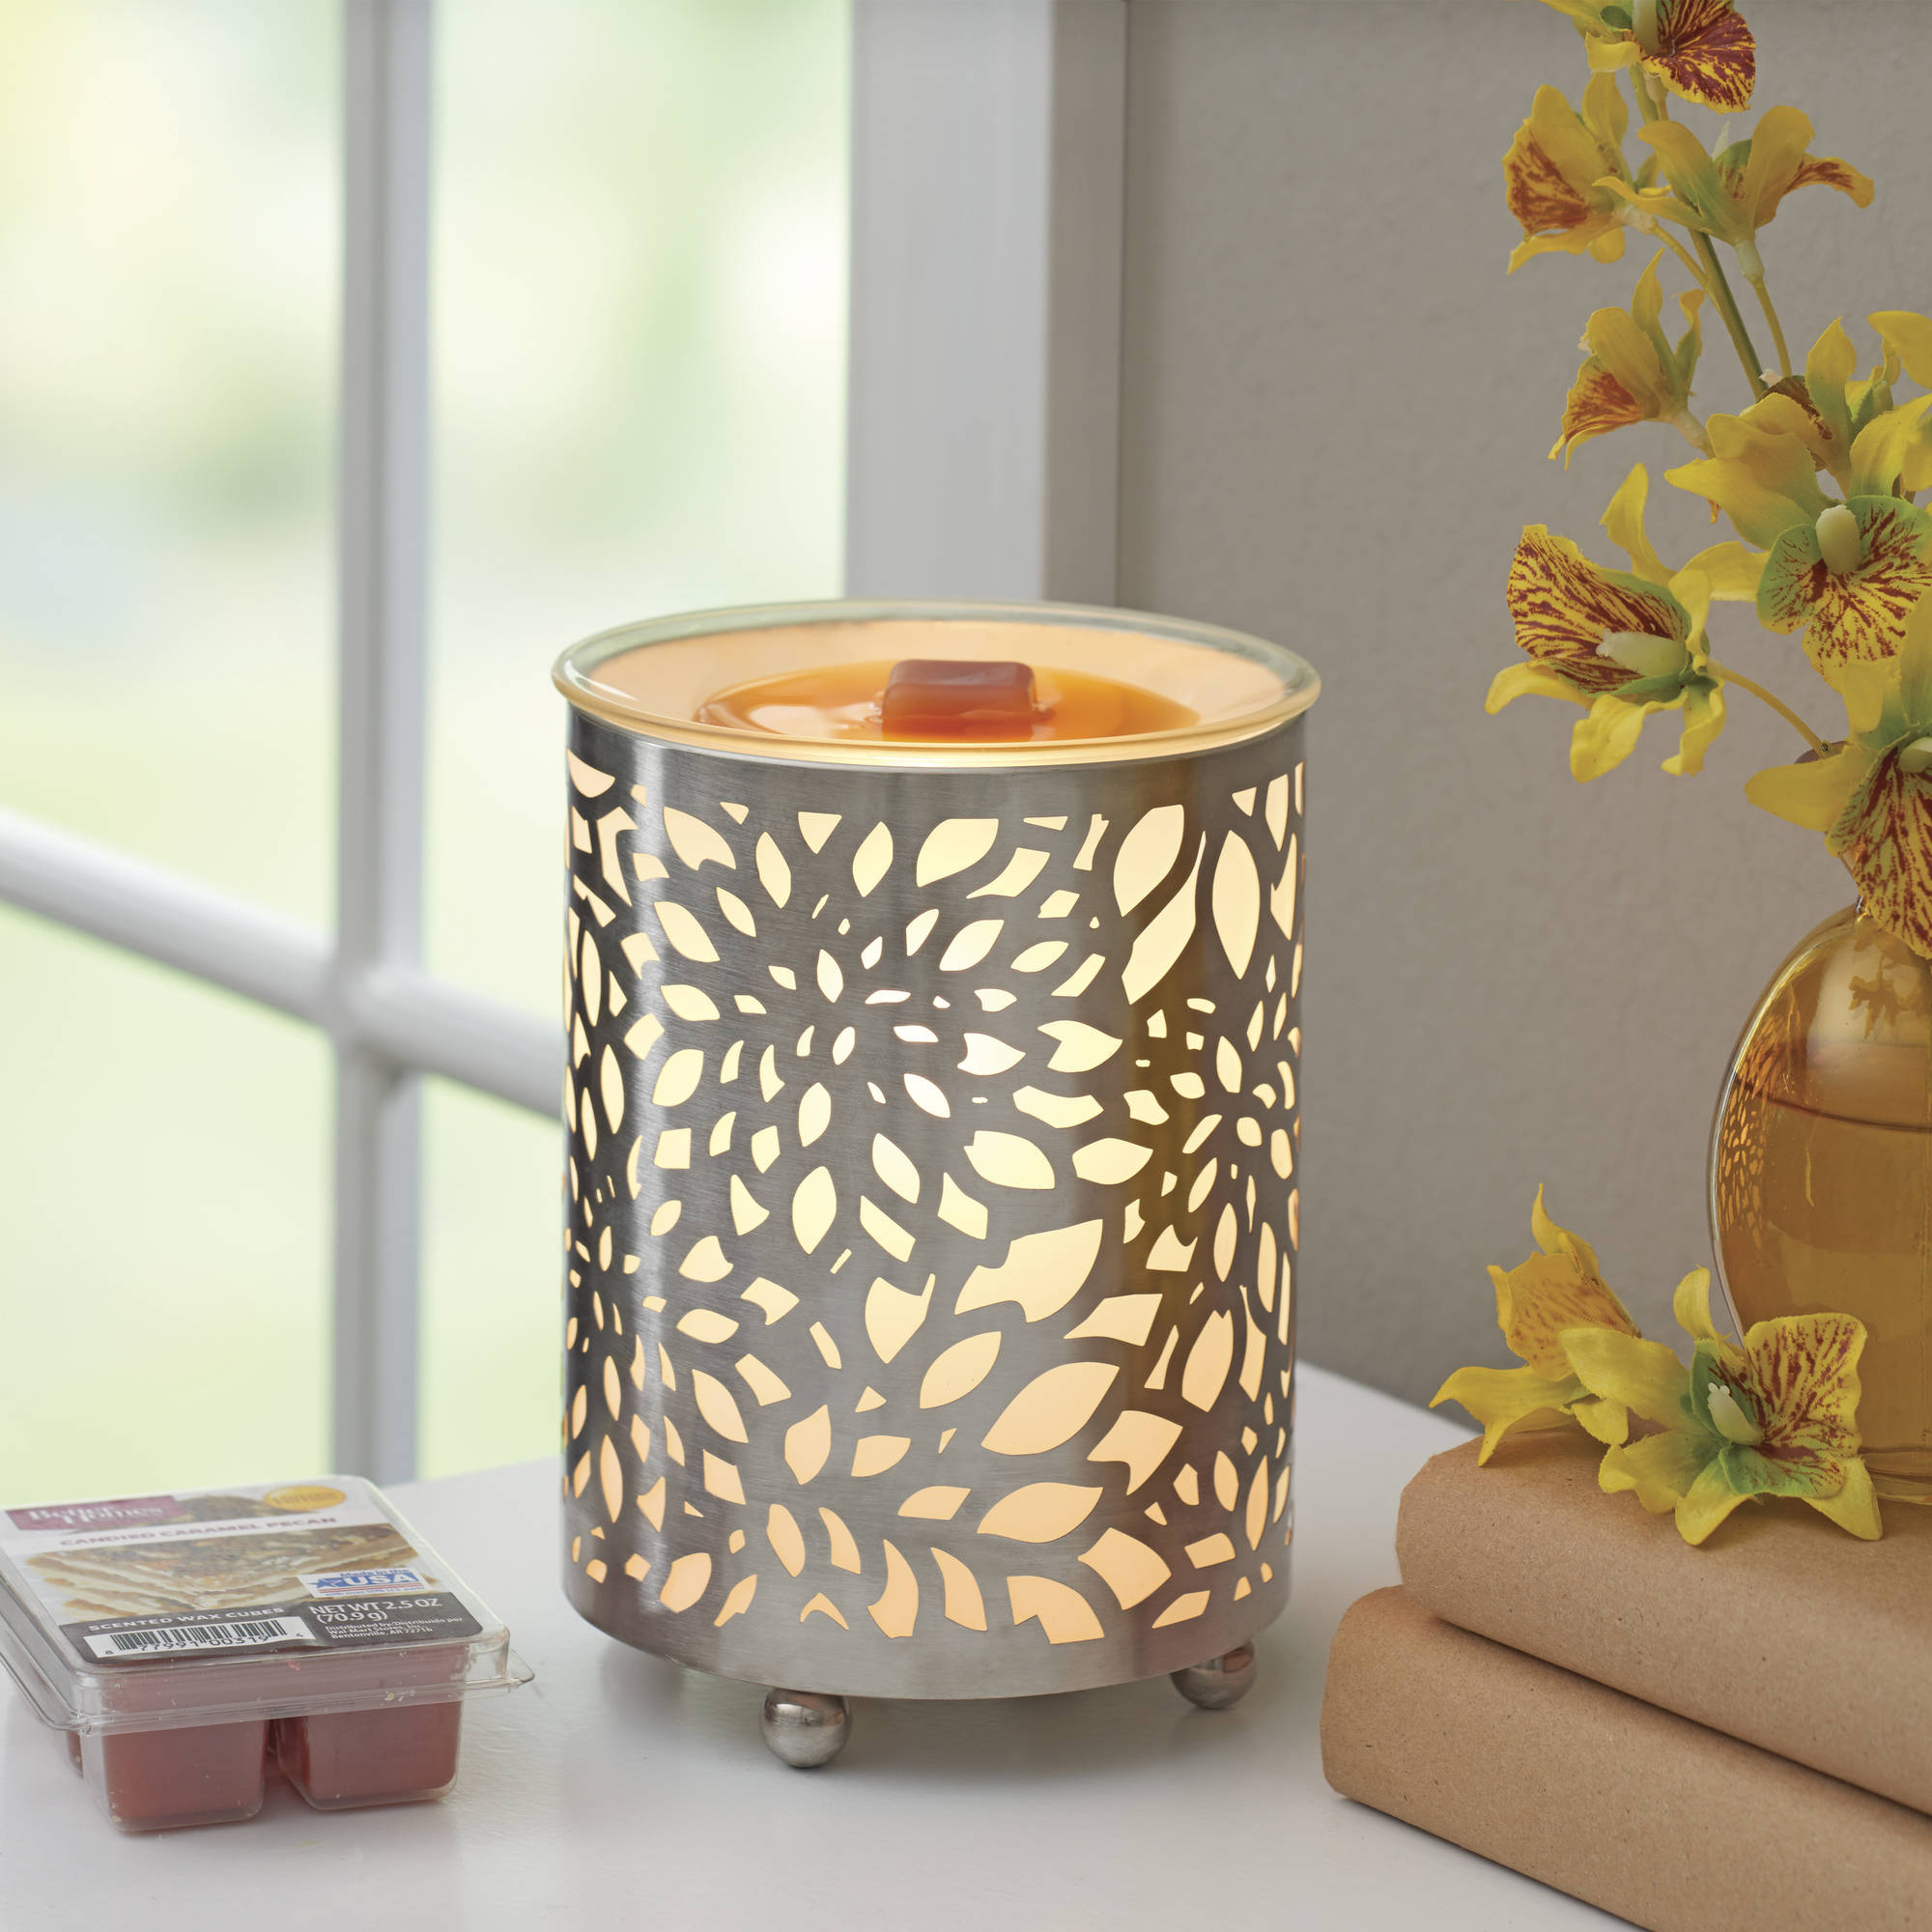 better homes and gardens wax warmer set, spring blooms - walmart